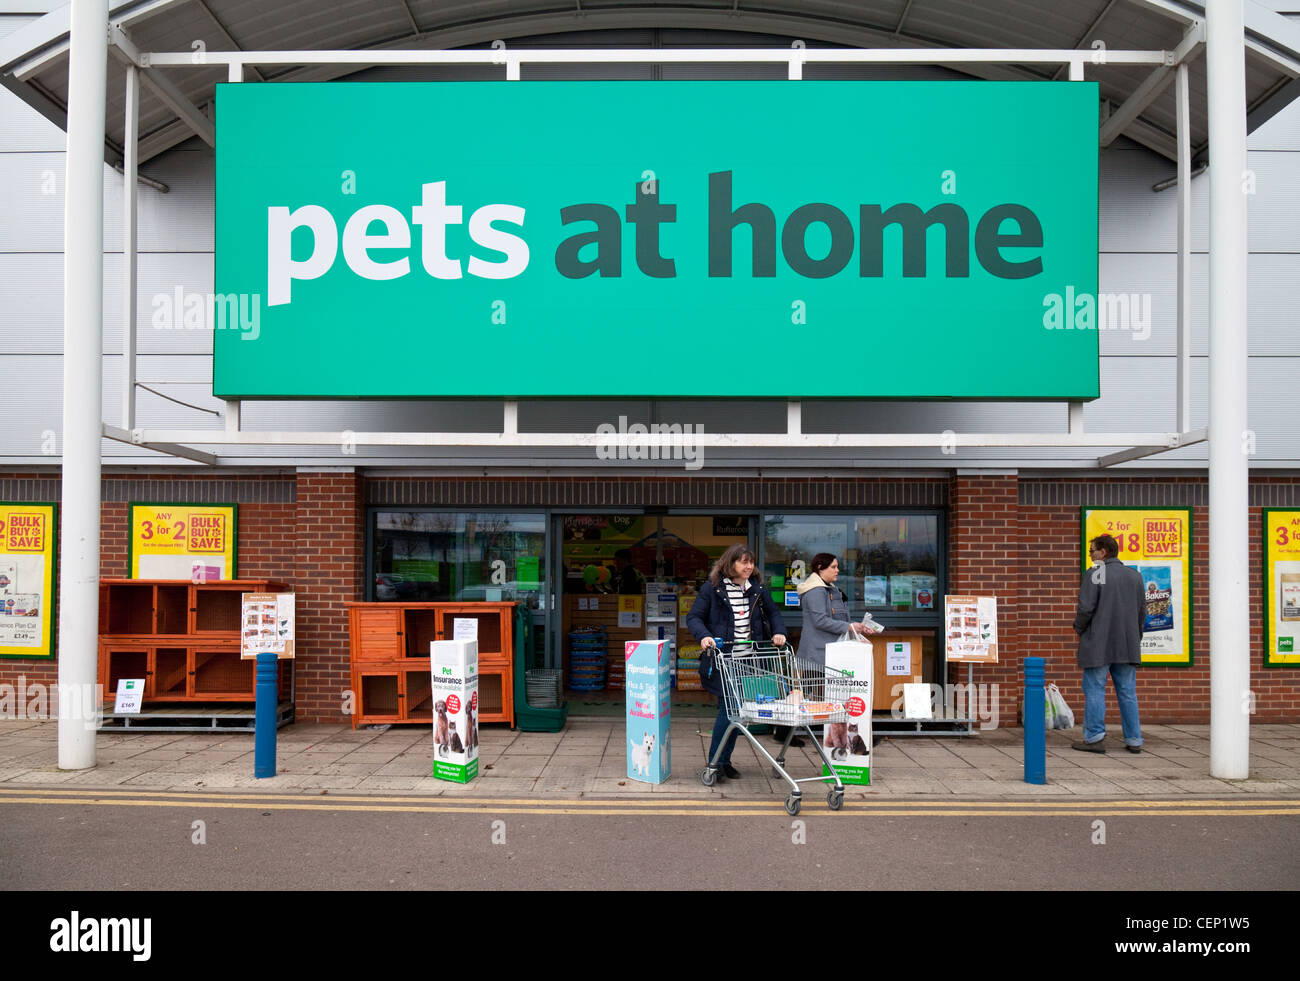 pets-at-home-store-newmarket-suffolk-uk-